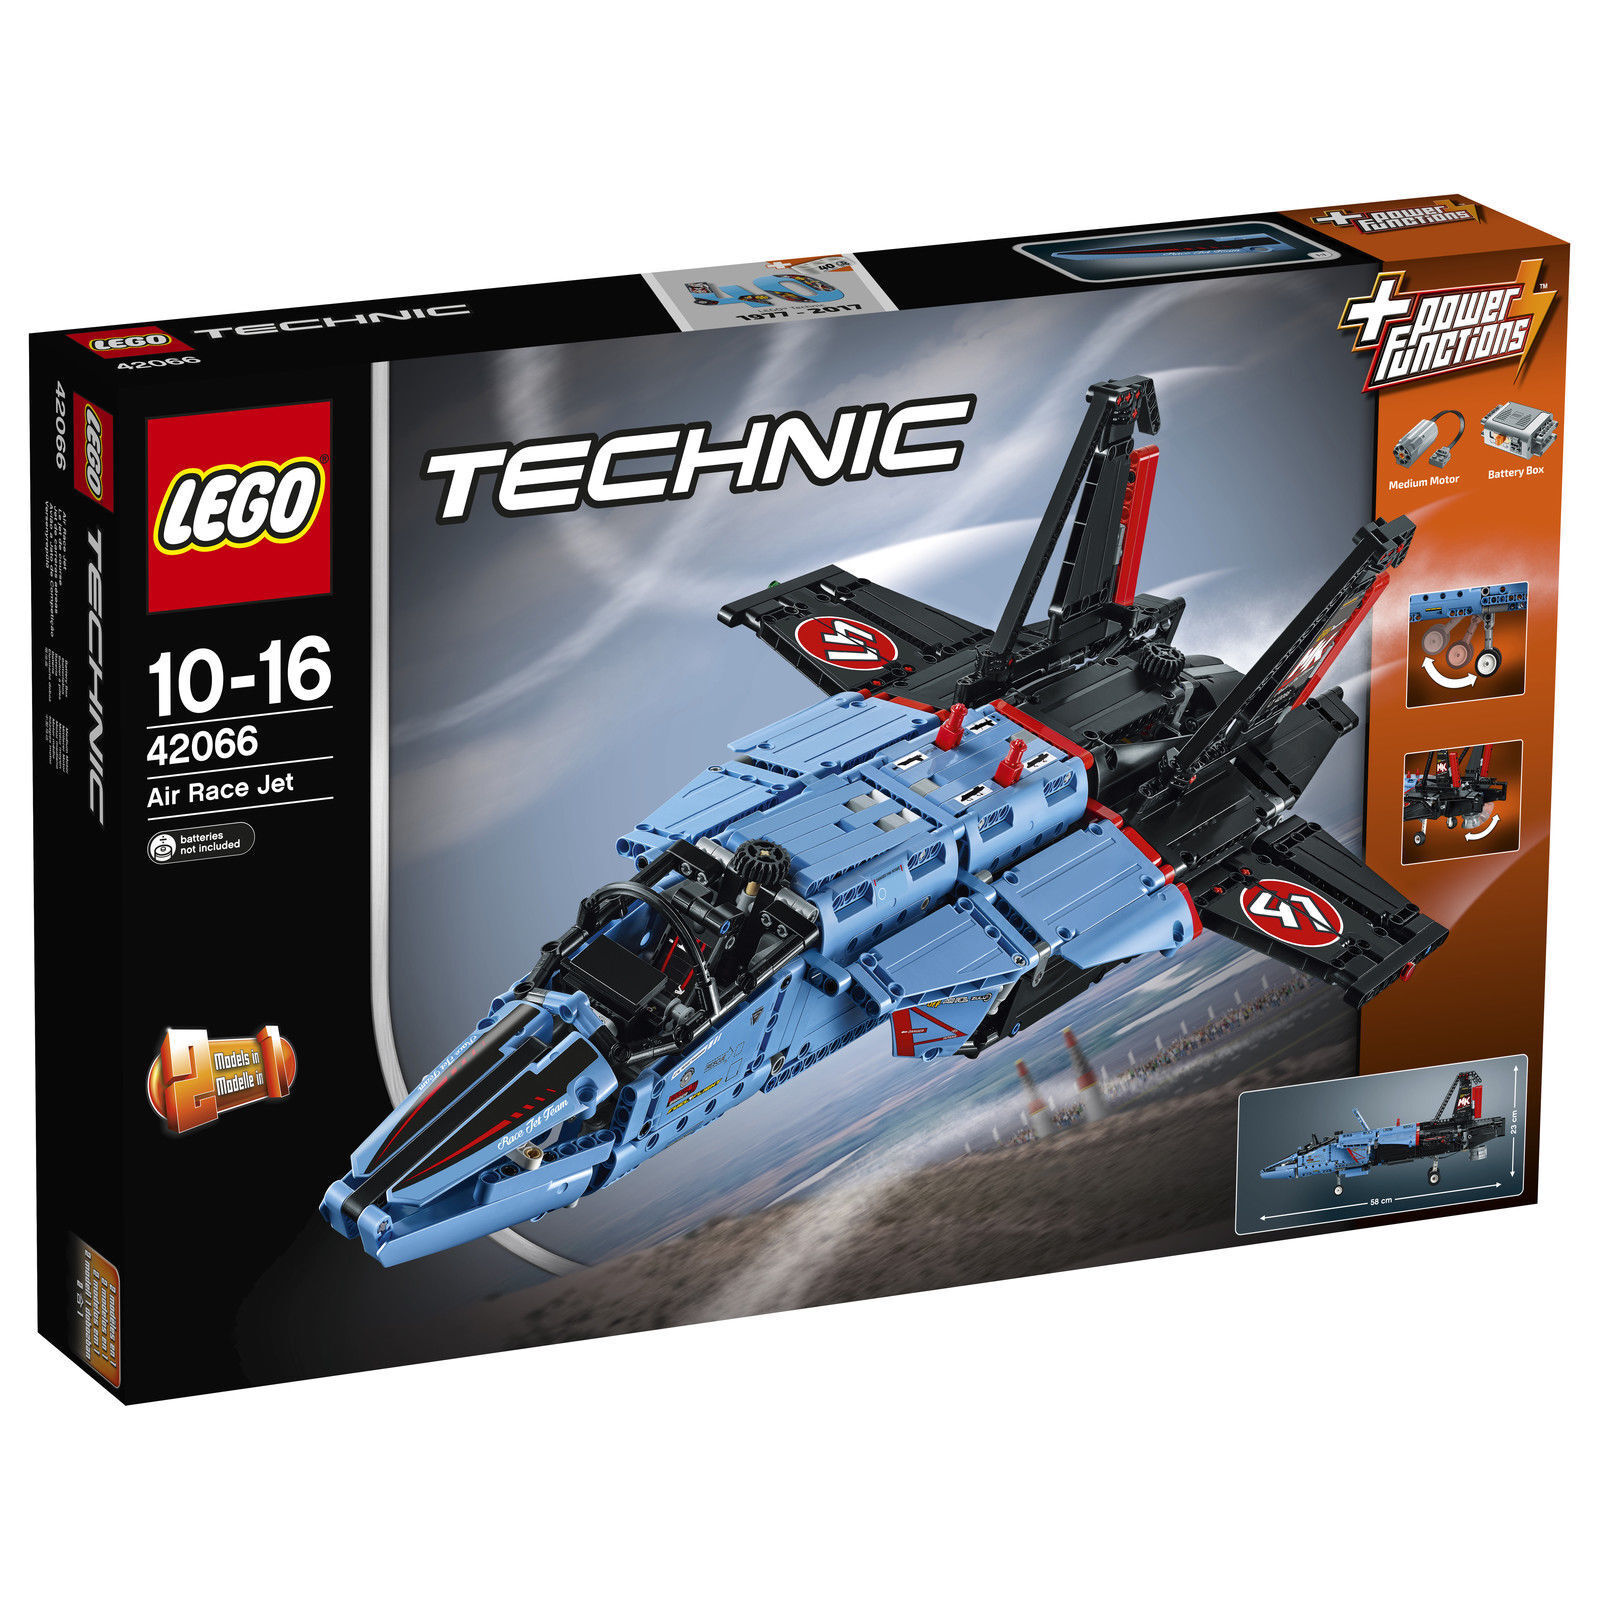 LEGO Technic 42066 Air Race Jet Neu OVP